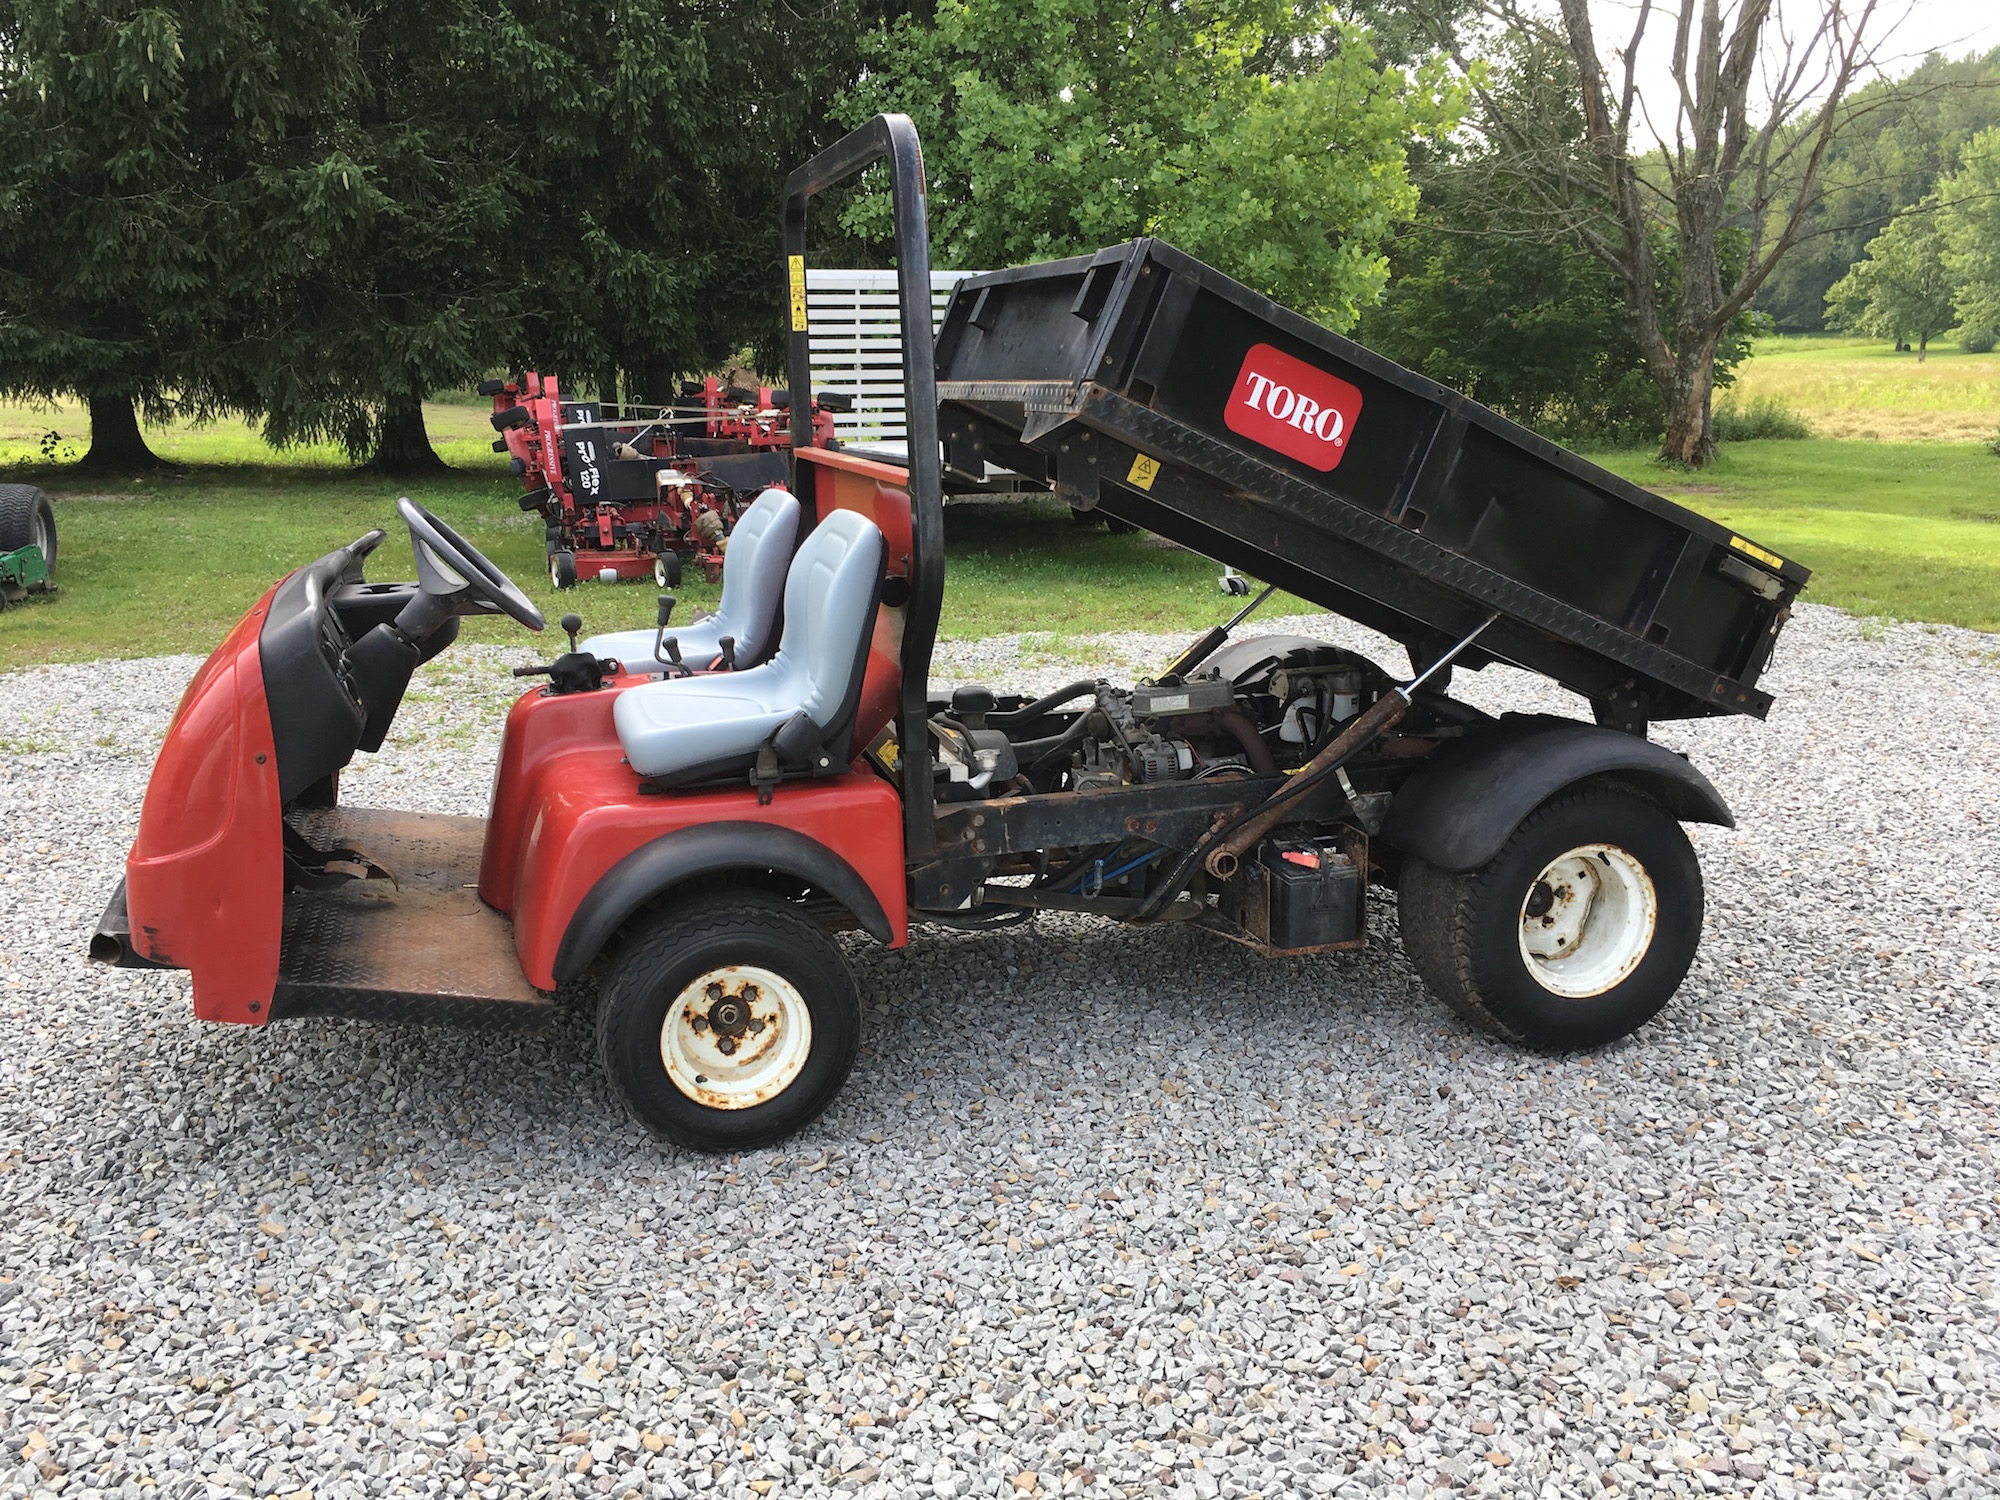 Toro 4300d Awd Workman Sold Laspina Used Equipment